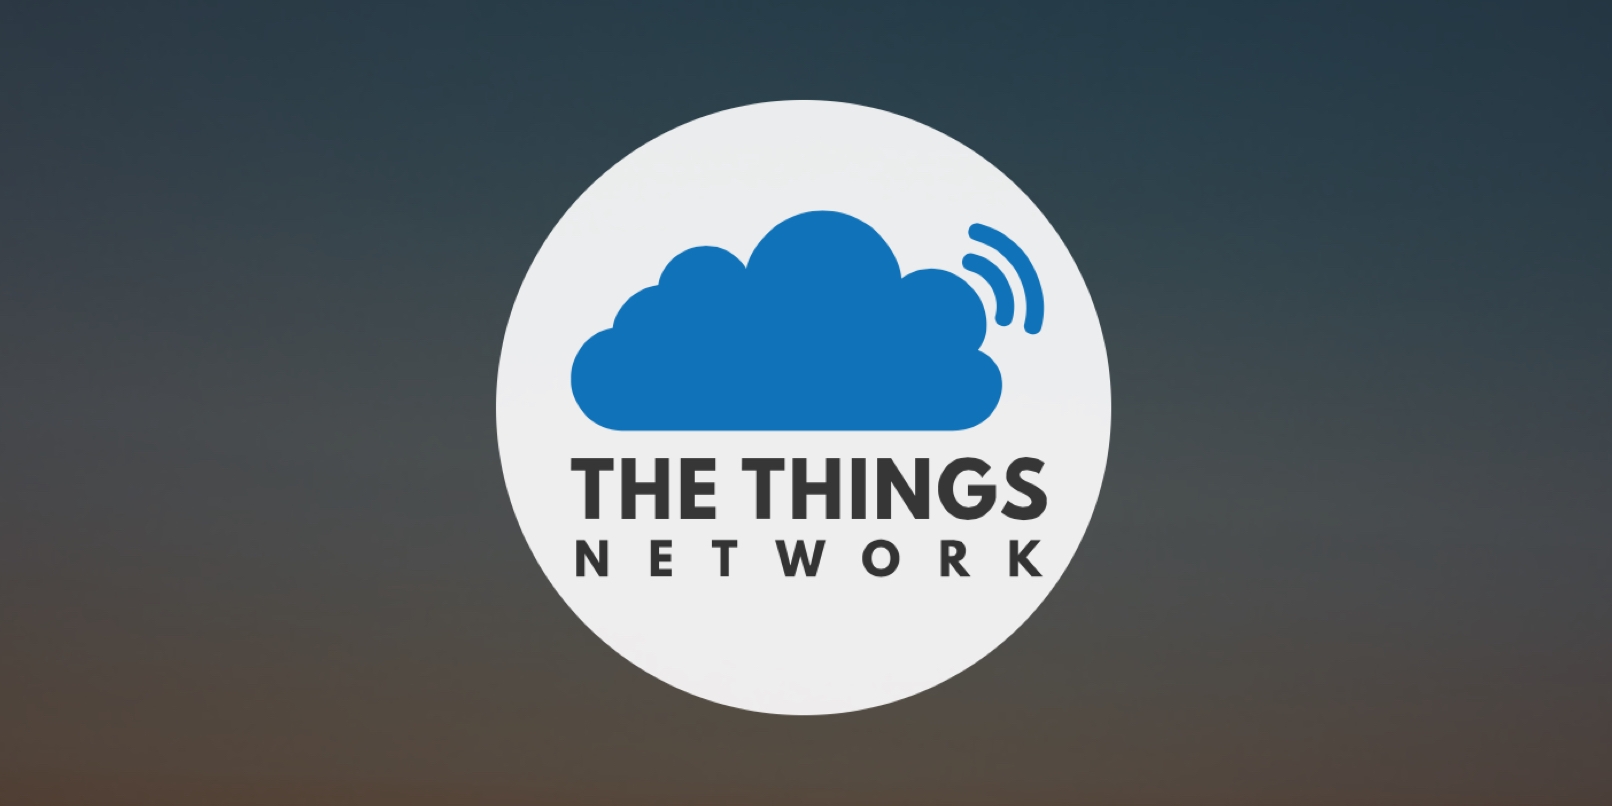 The Things Network wants to make every city smart – starting with Amsterdam